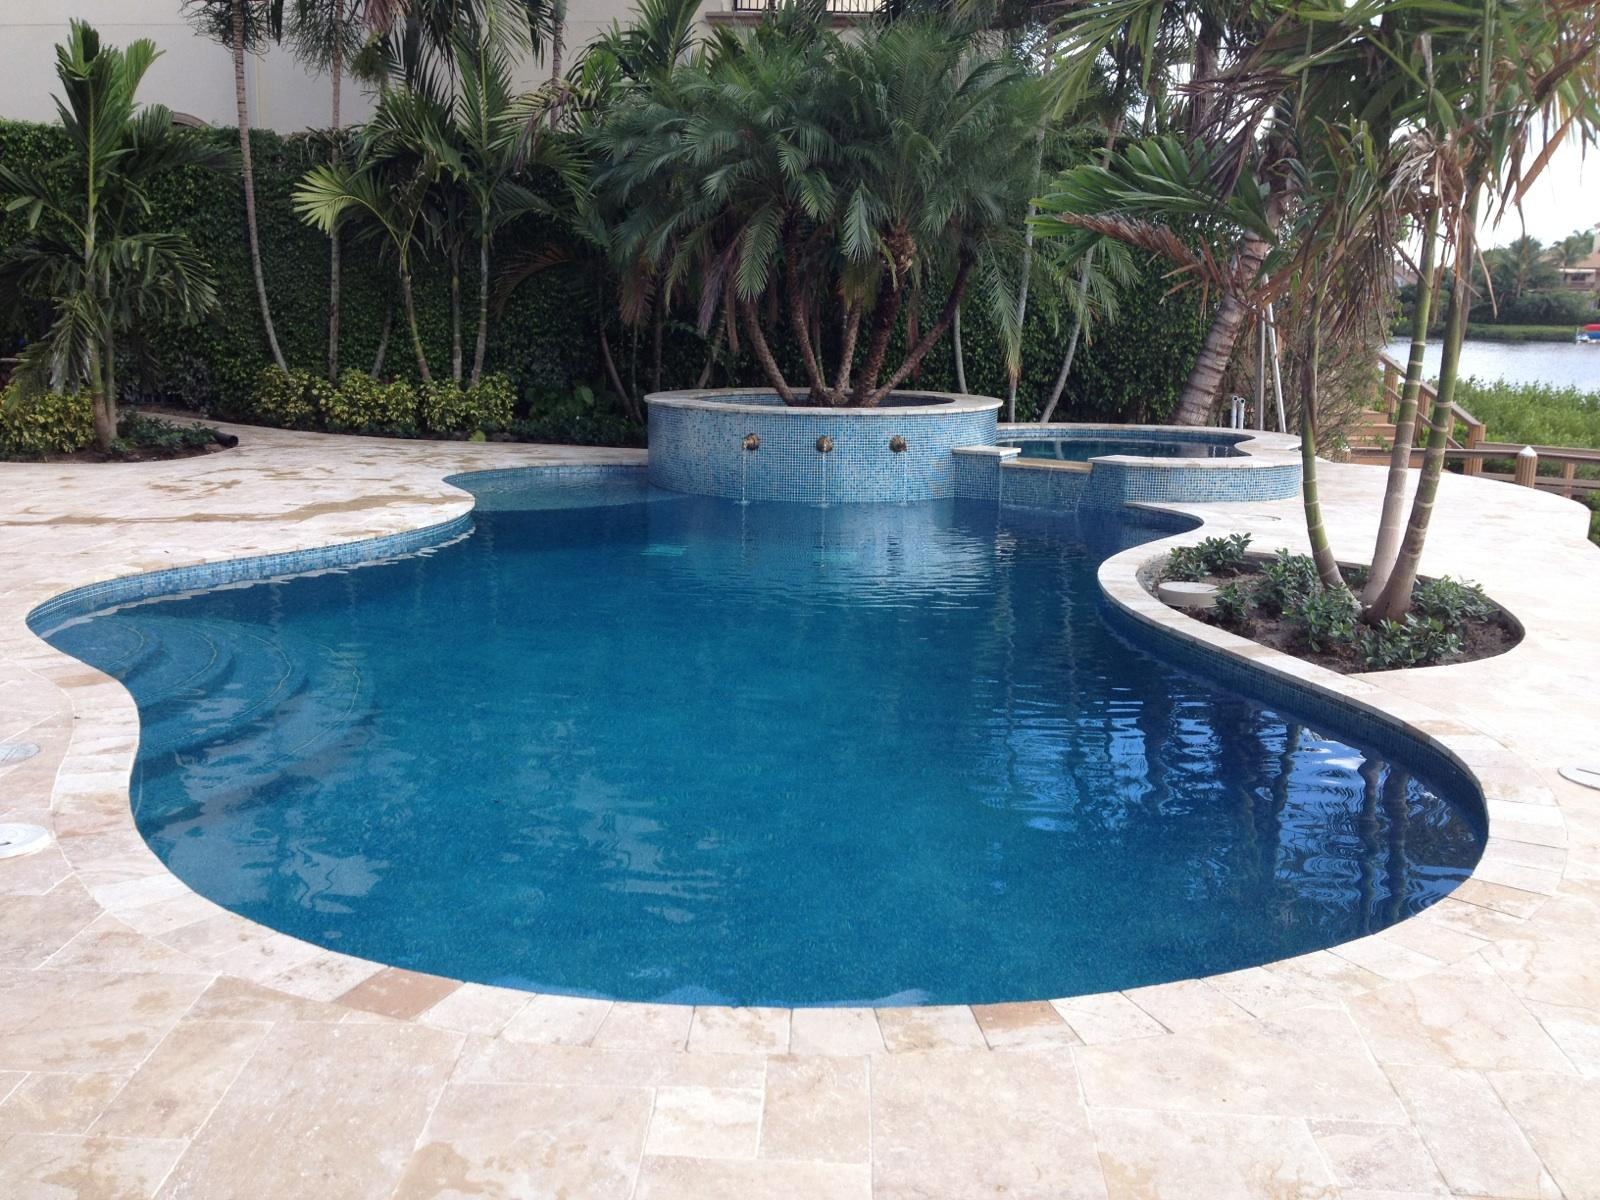 rhr pools organic shaped pool with blue interior and water feature on raised wall